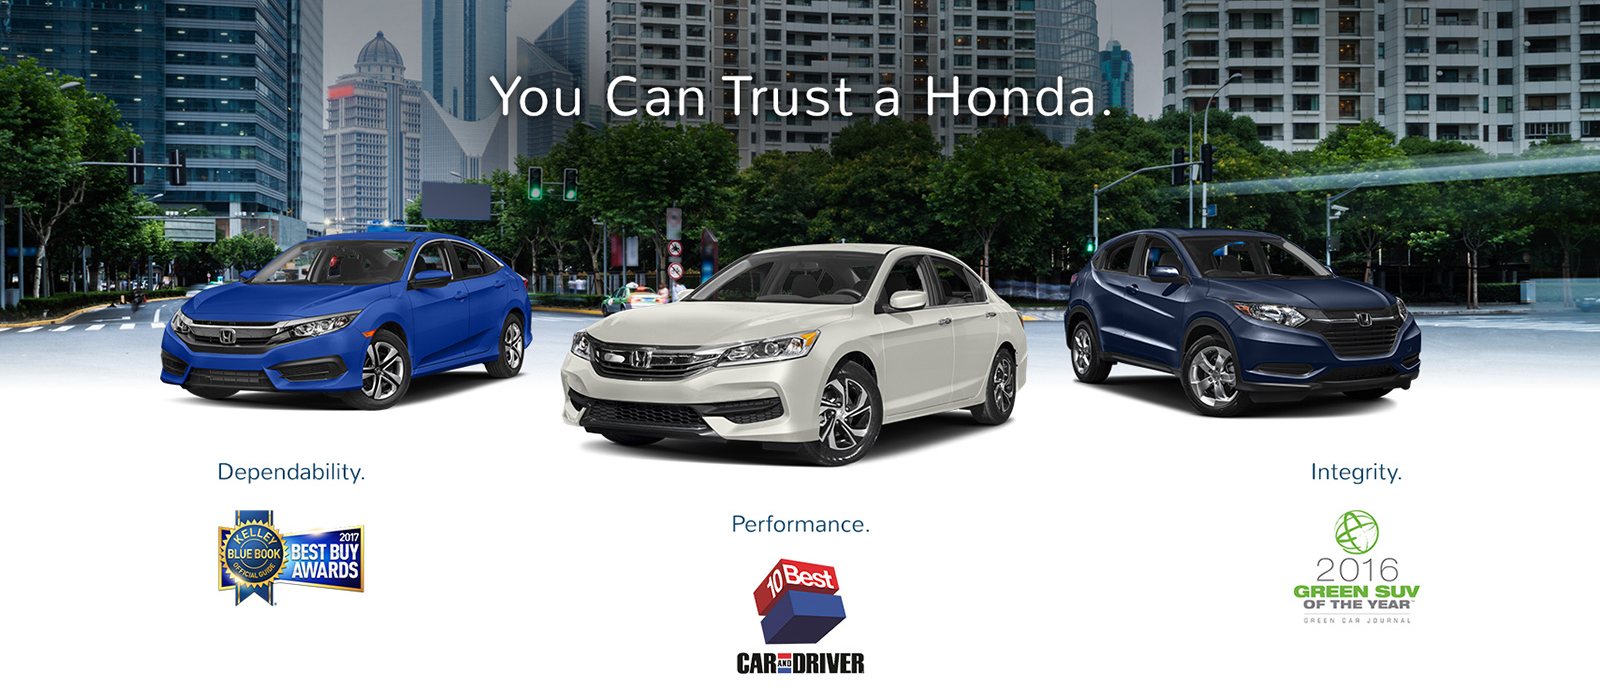 You Can Trust Honda